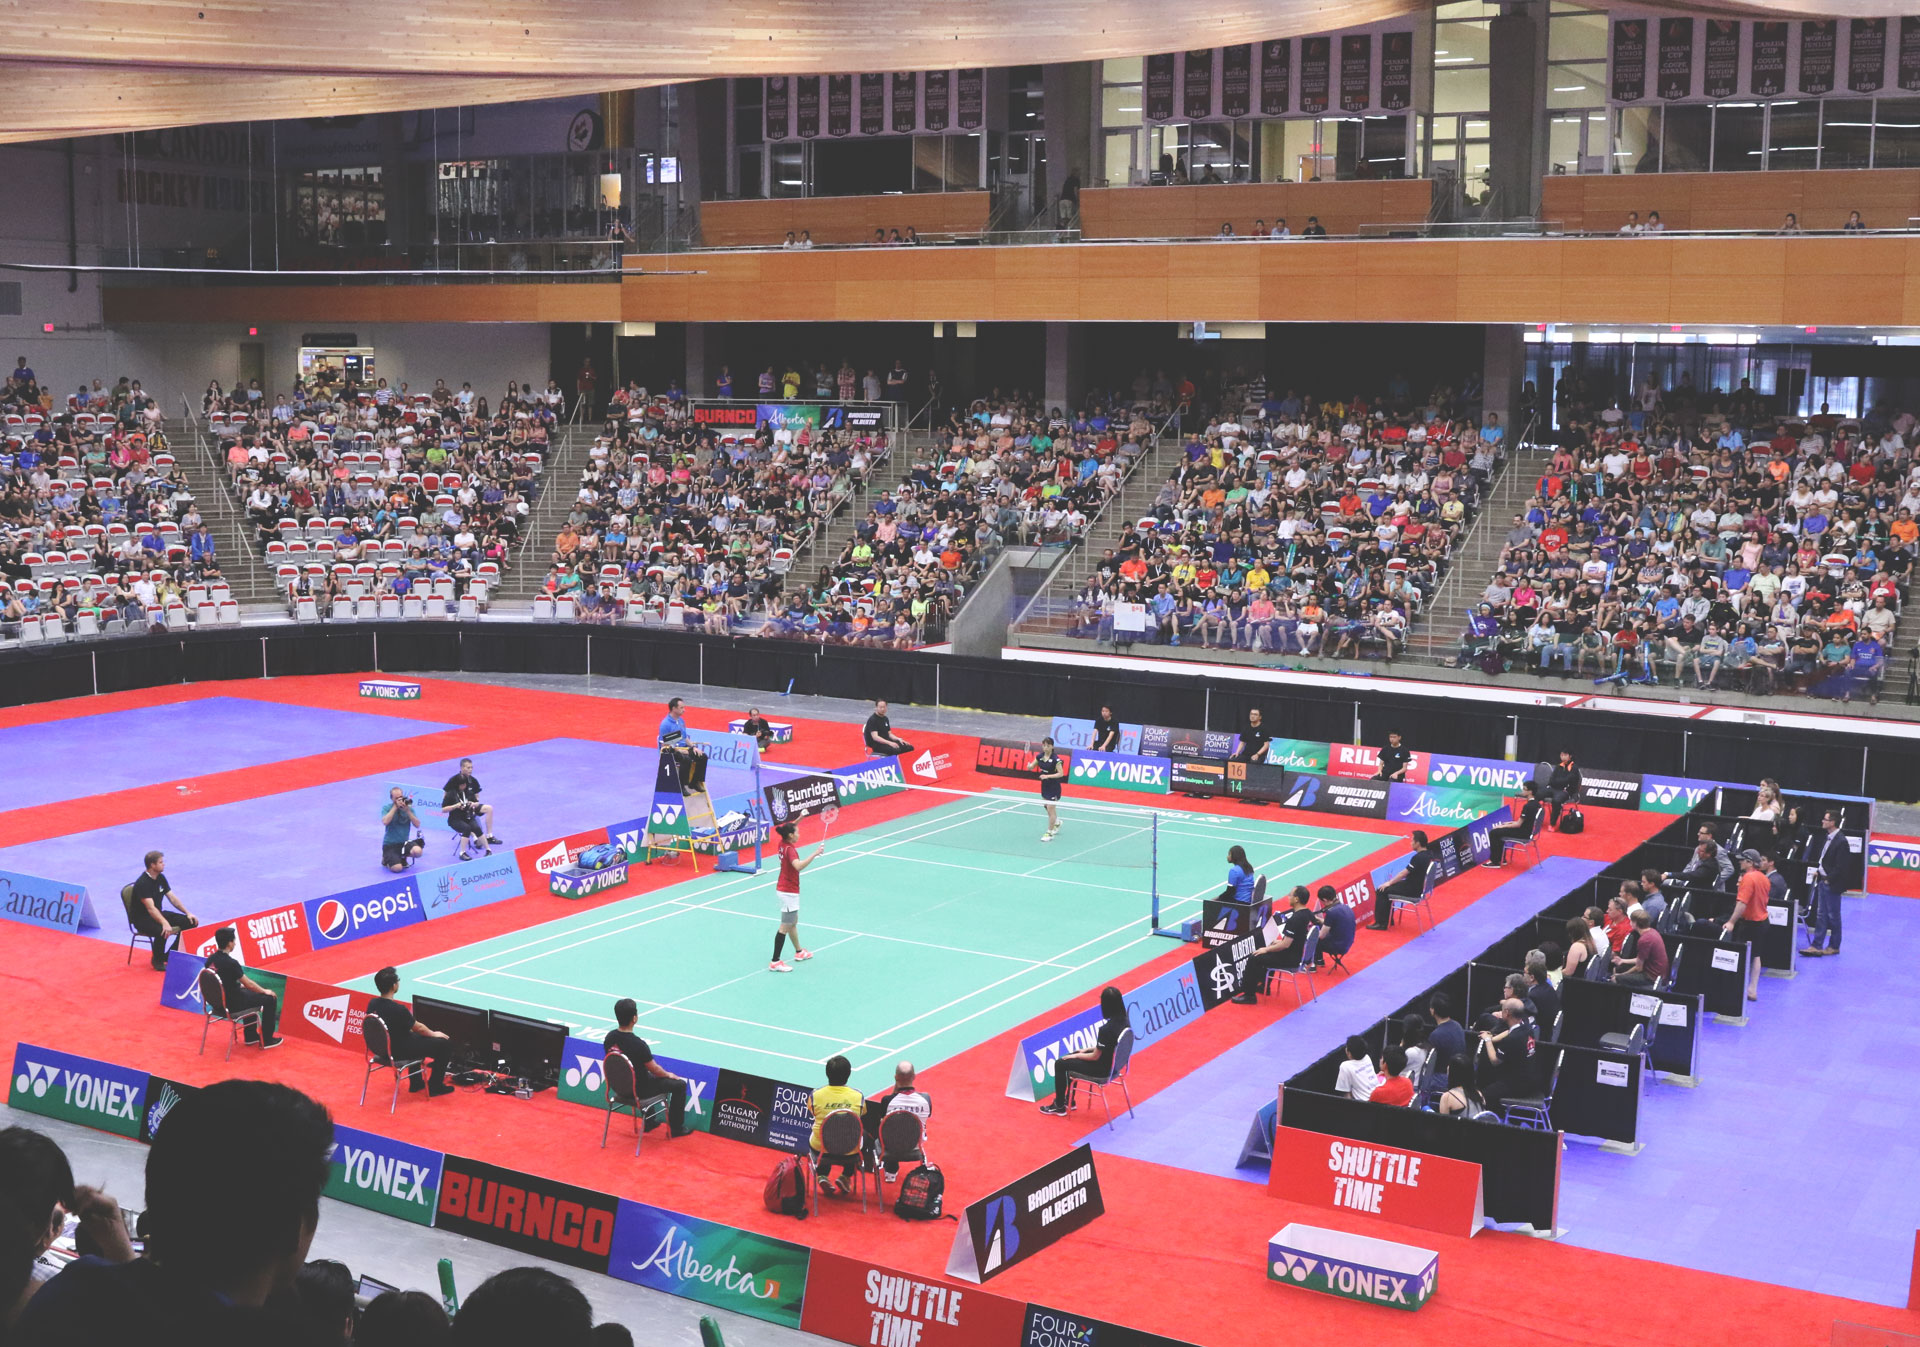 Top international competitors come to Calgary for the YONEX Canada Open.